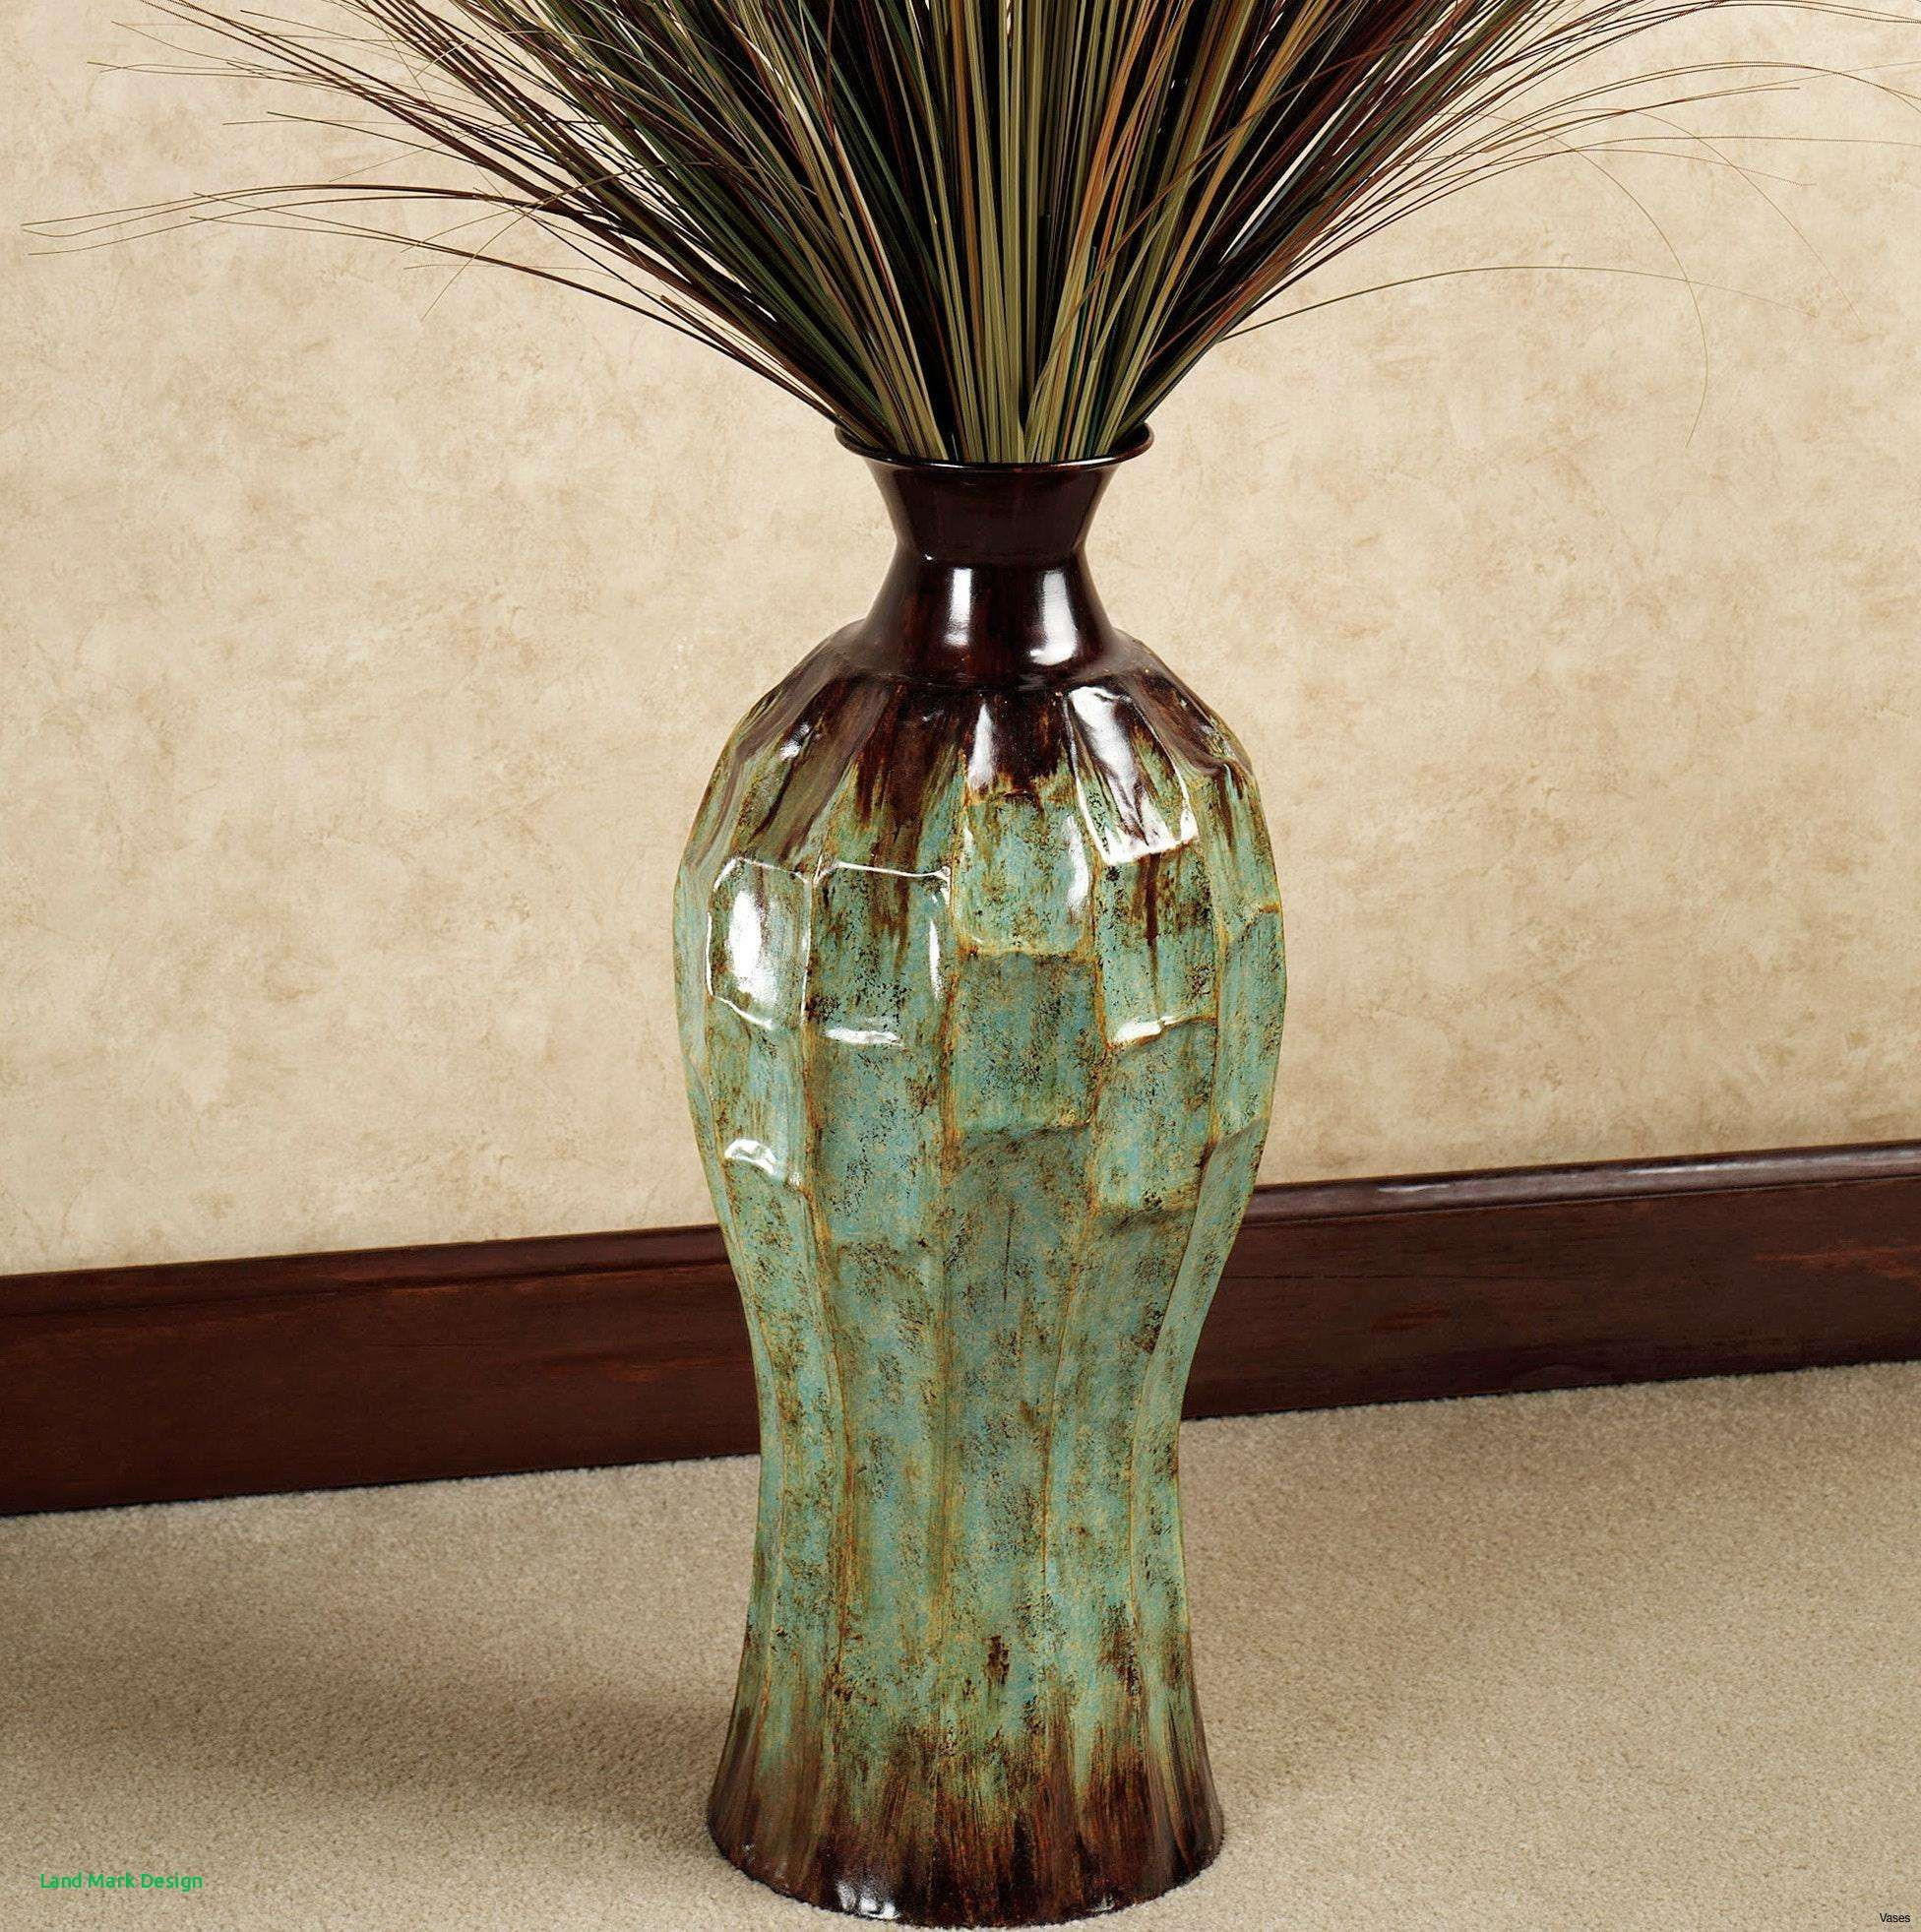 Pier One Vases Of 27 Fall Vase Fillers the Weekly World Intended for Floor Vase Fillers